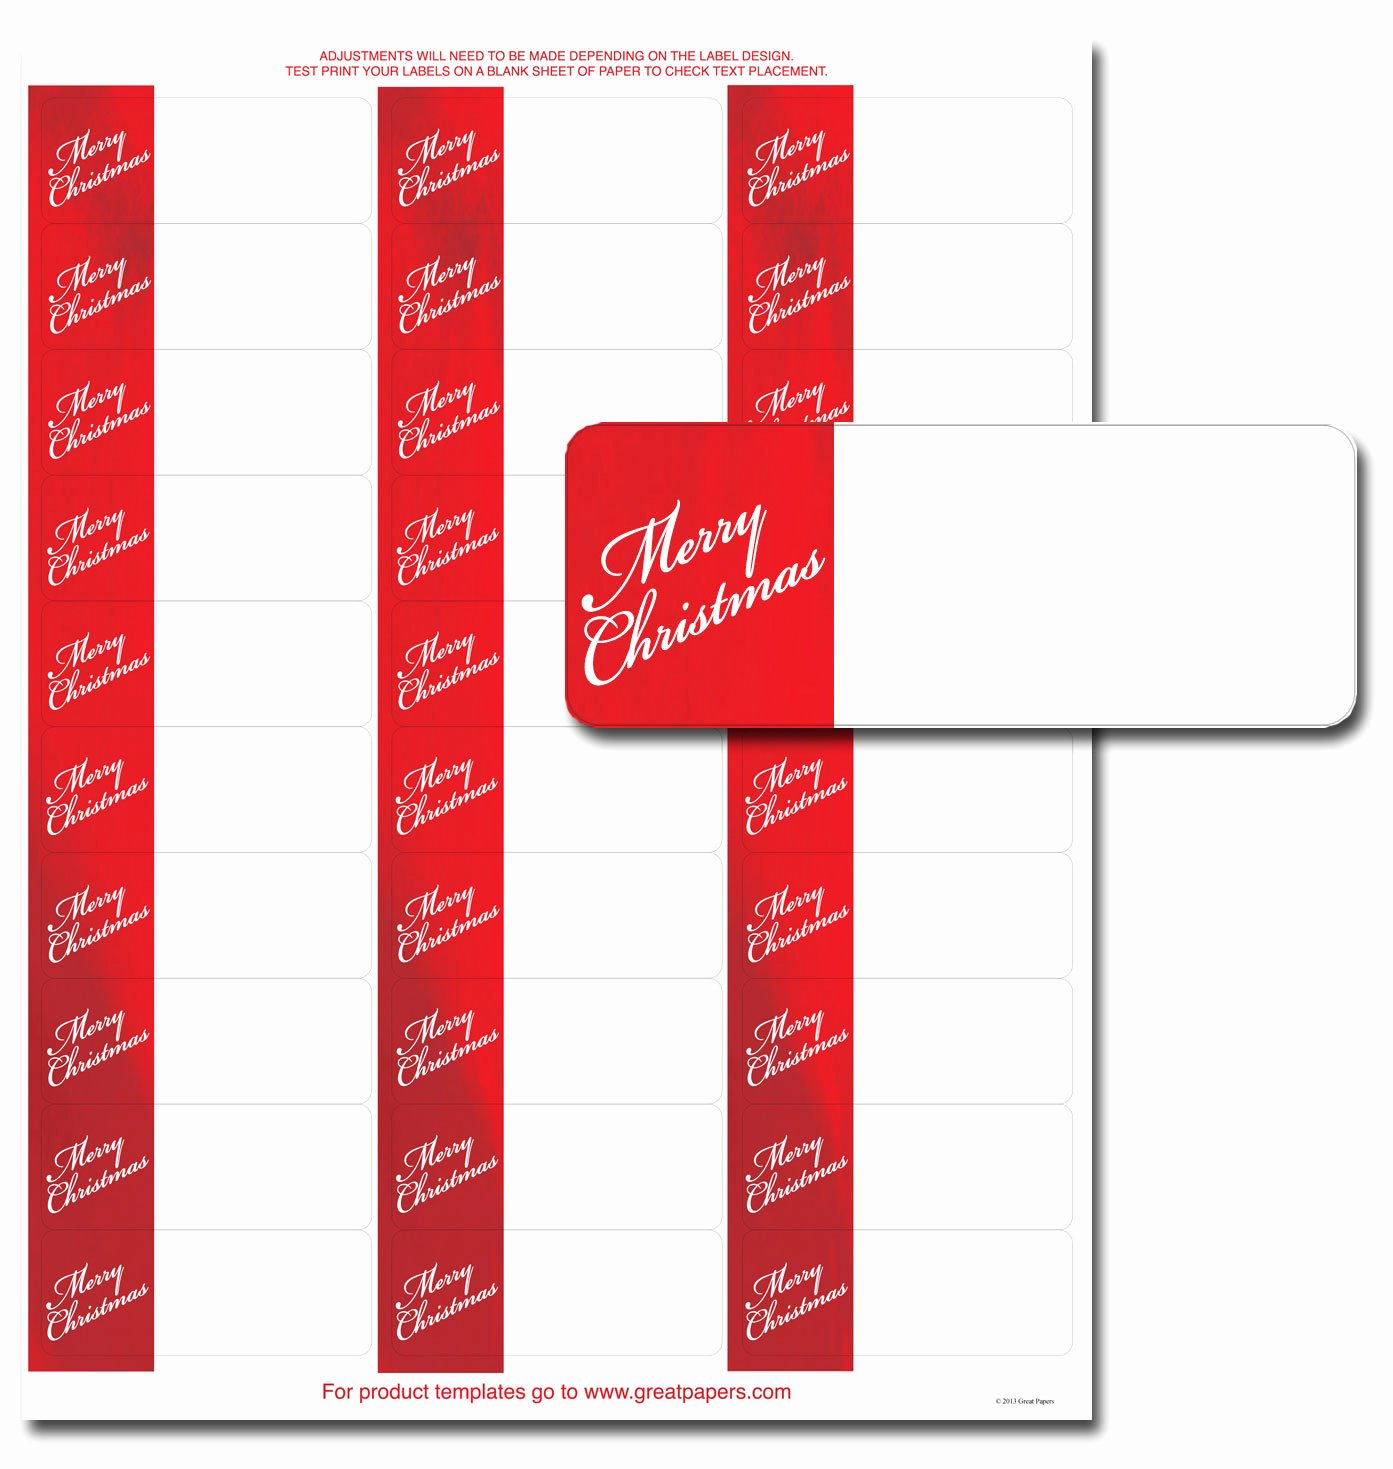 Christmas Mailing Labels Template Awesome Free Christmas Return Address Labels Template